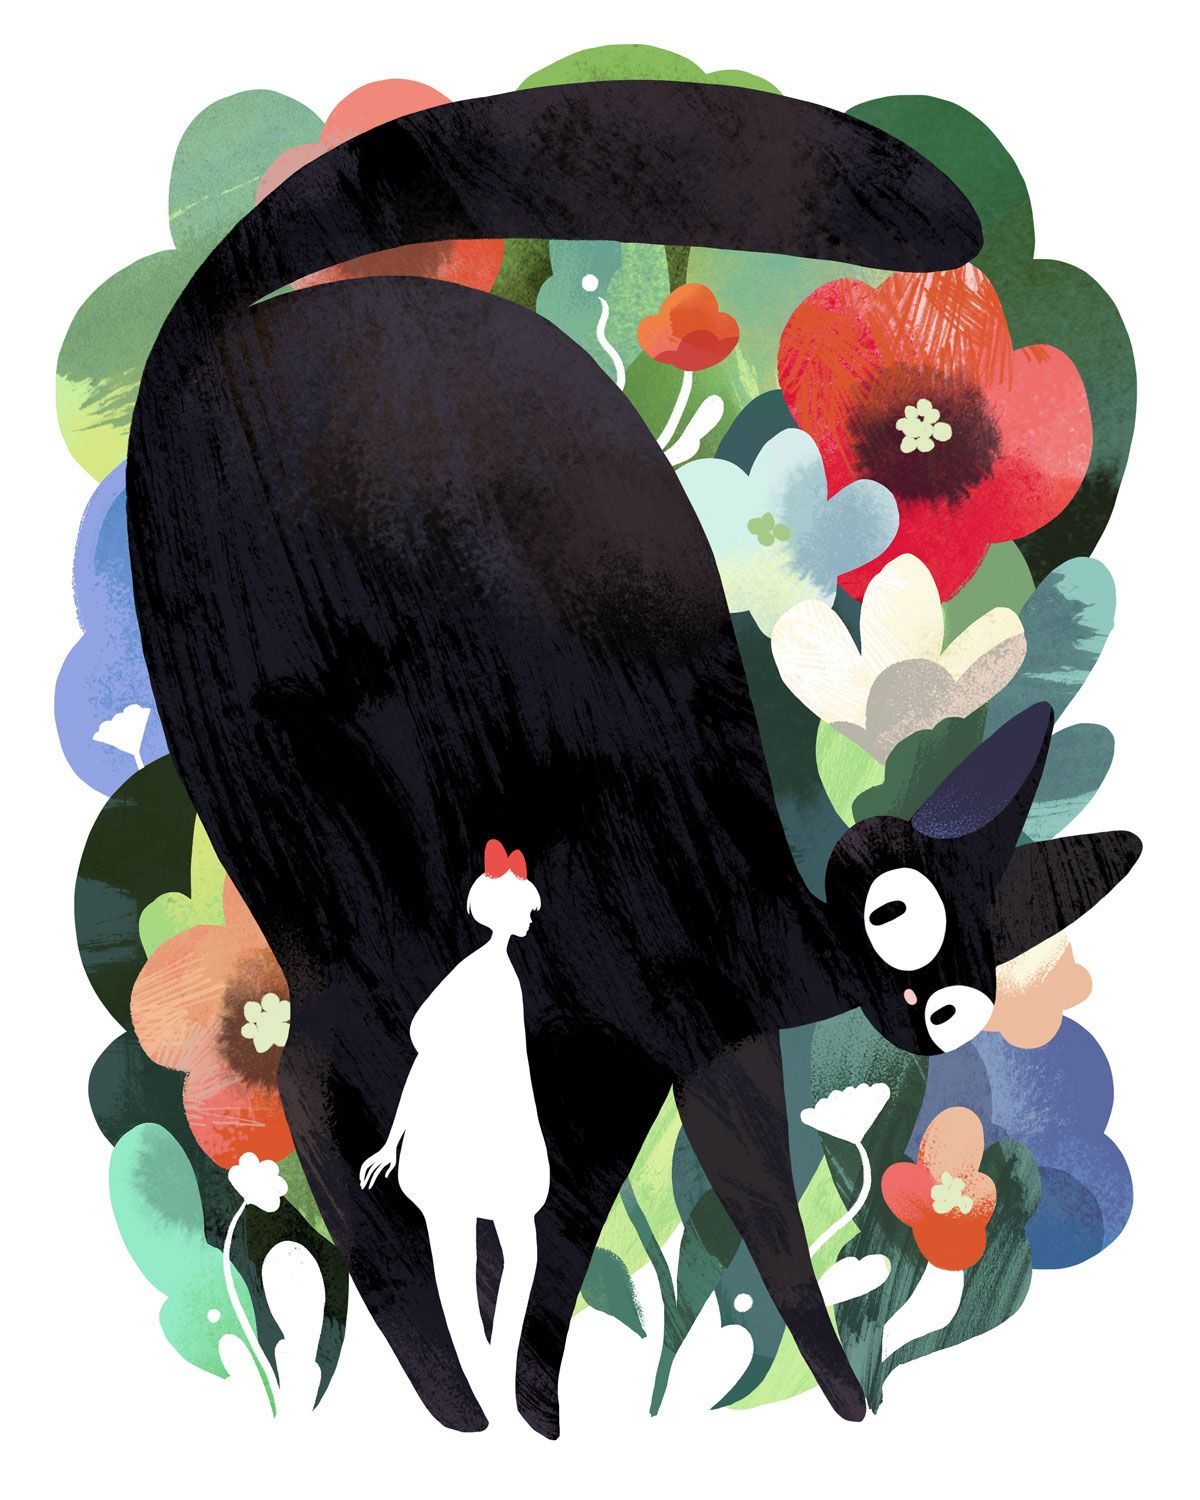 Check out this behance project jiji in the flowers